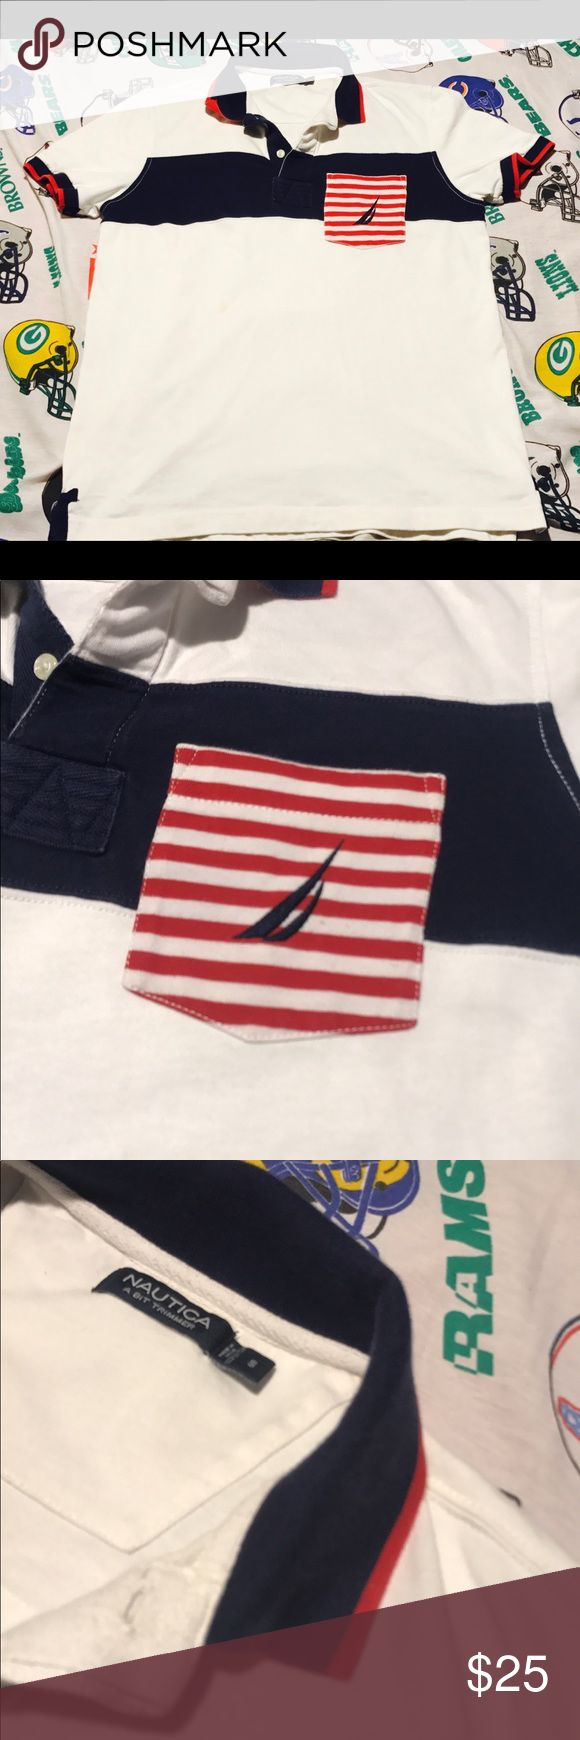 """Vintage Nautica Rugby Polo Vintage Fresh Nautica men's Rugby Polo!  Blue Red & White Americana Color Way . Nautica all Embroidered flag on Chest Side Pocket . Very clean Sail boat Nautica patch Rocking on the back Side ! Very Fresh Find . Size Small  Pit2pit:23 1/2"""" Length:27"""" Collar2sleeve:14"""" Nautica Shirts Polos"""